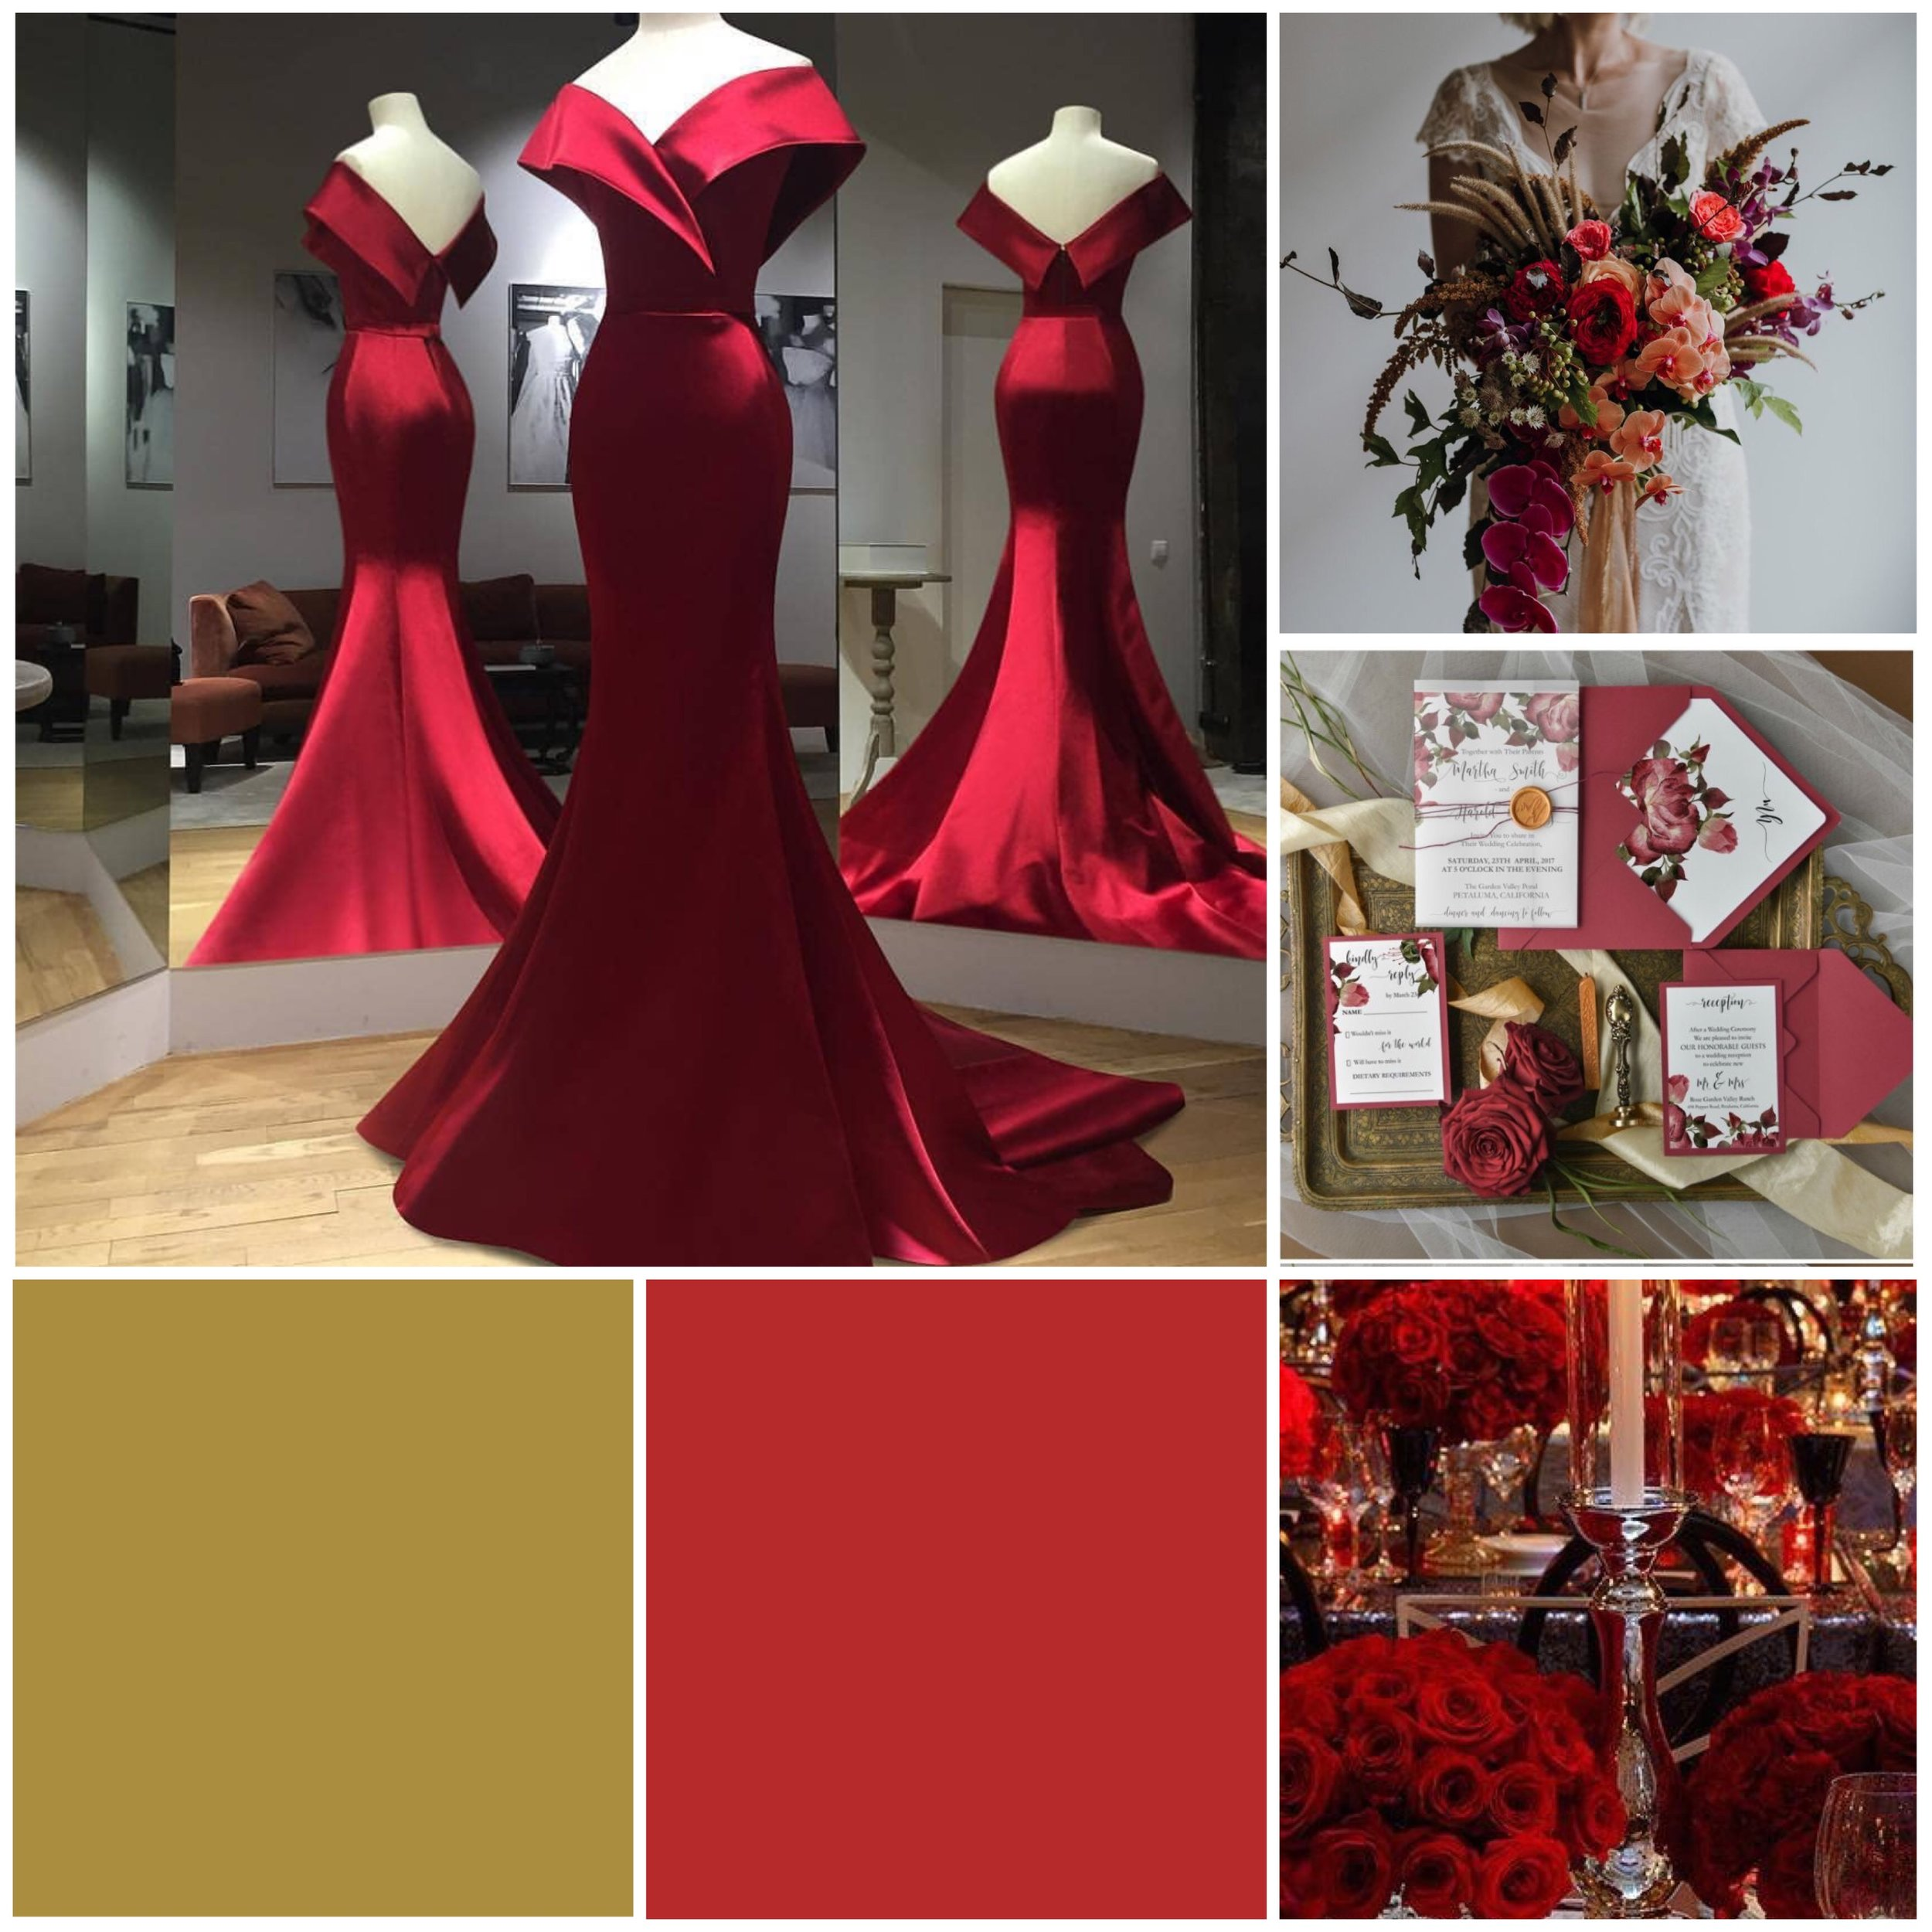 Poppy Red & Gold Moodboard for your wedding inspiration.